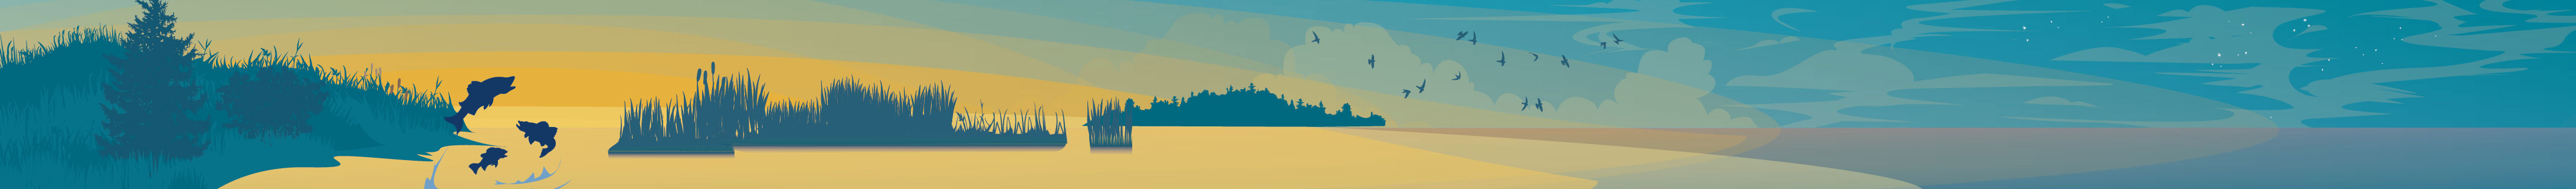 A section of the Great Lakes header illustration, showing grassy marshland in a wide expanse of lake water as the orange glow of the sun recedes from east to west.